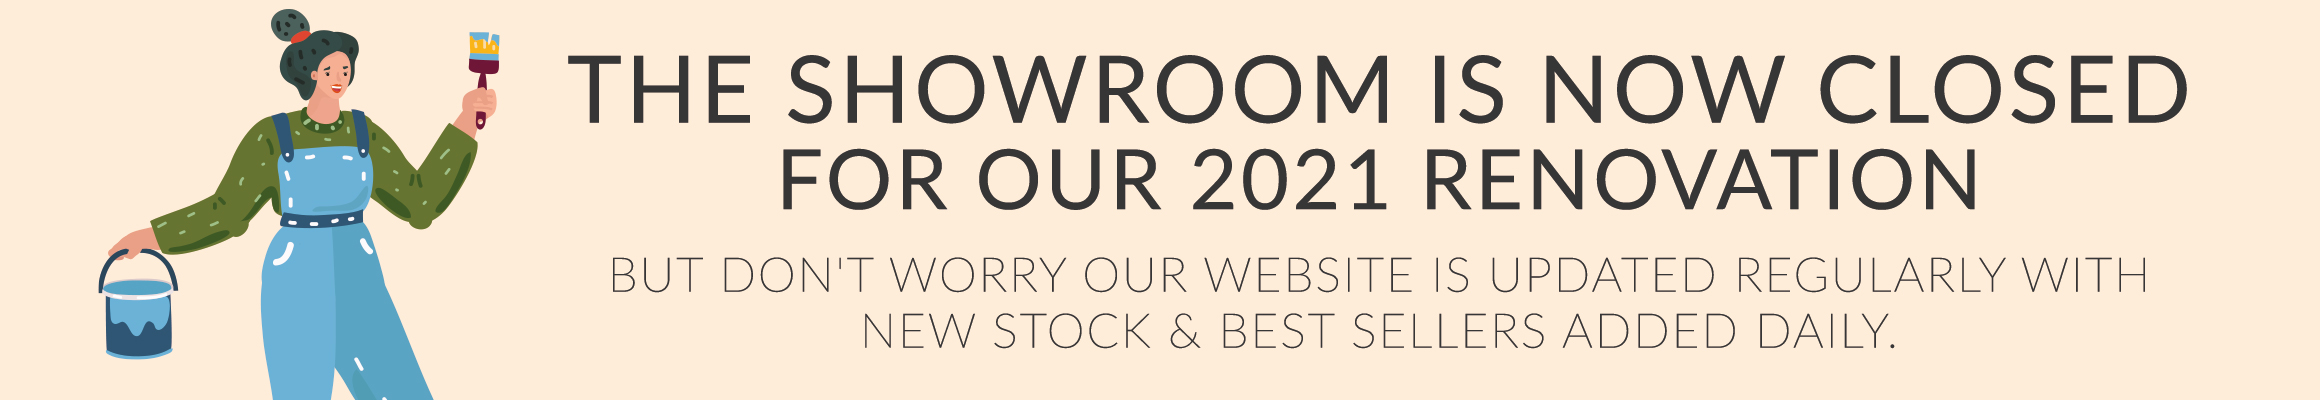 Our showrooms are currently closed for refurbishment